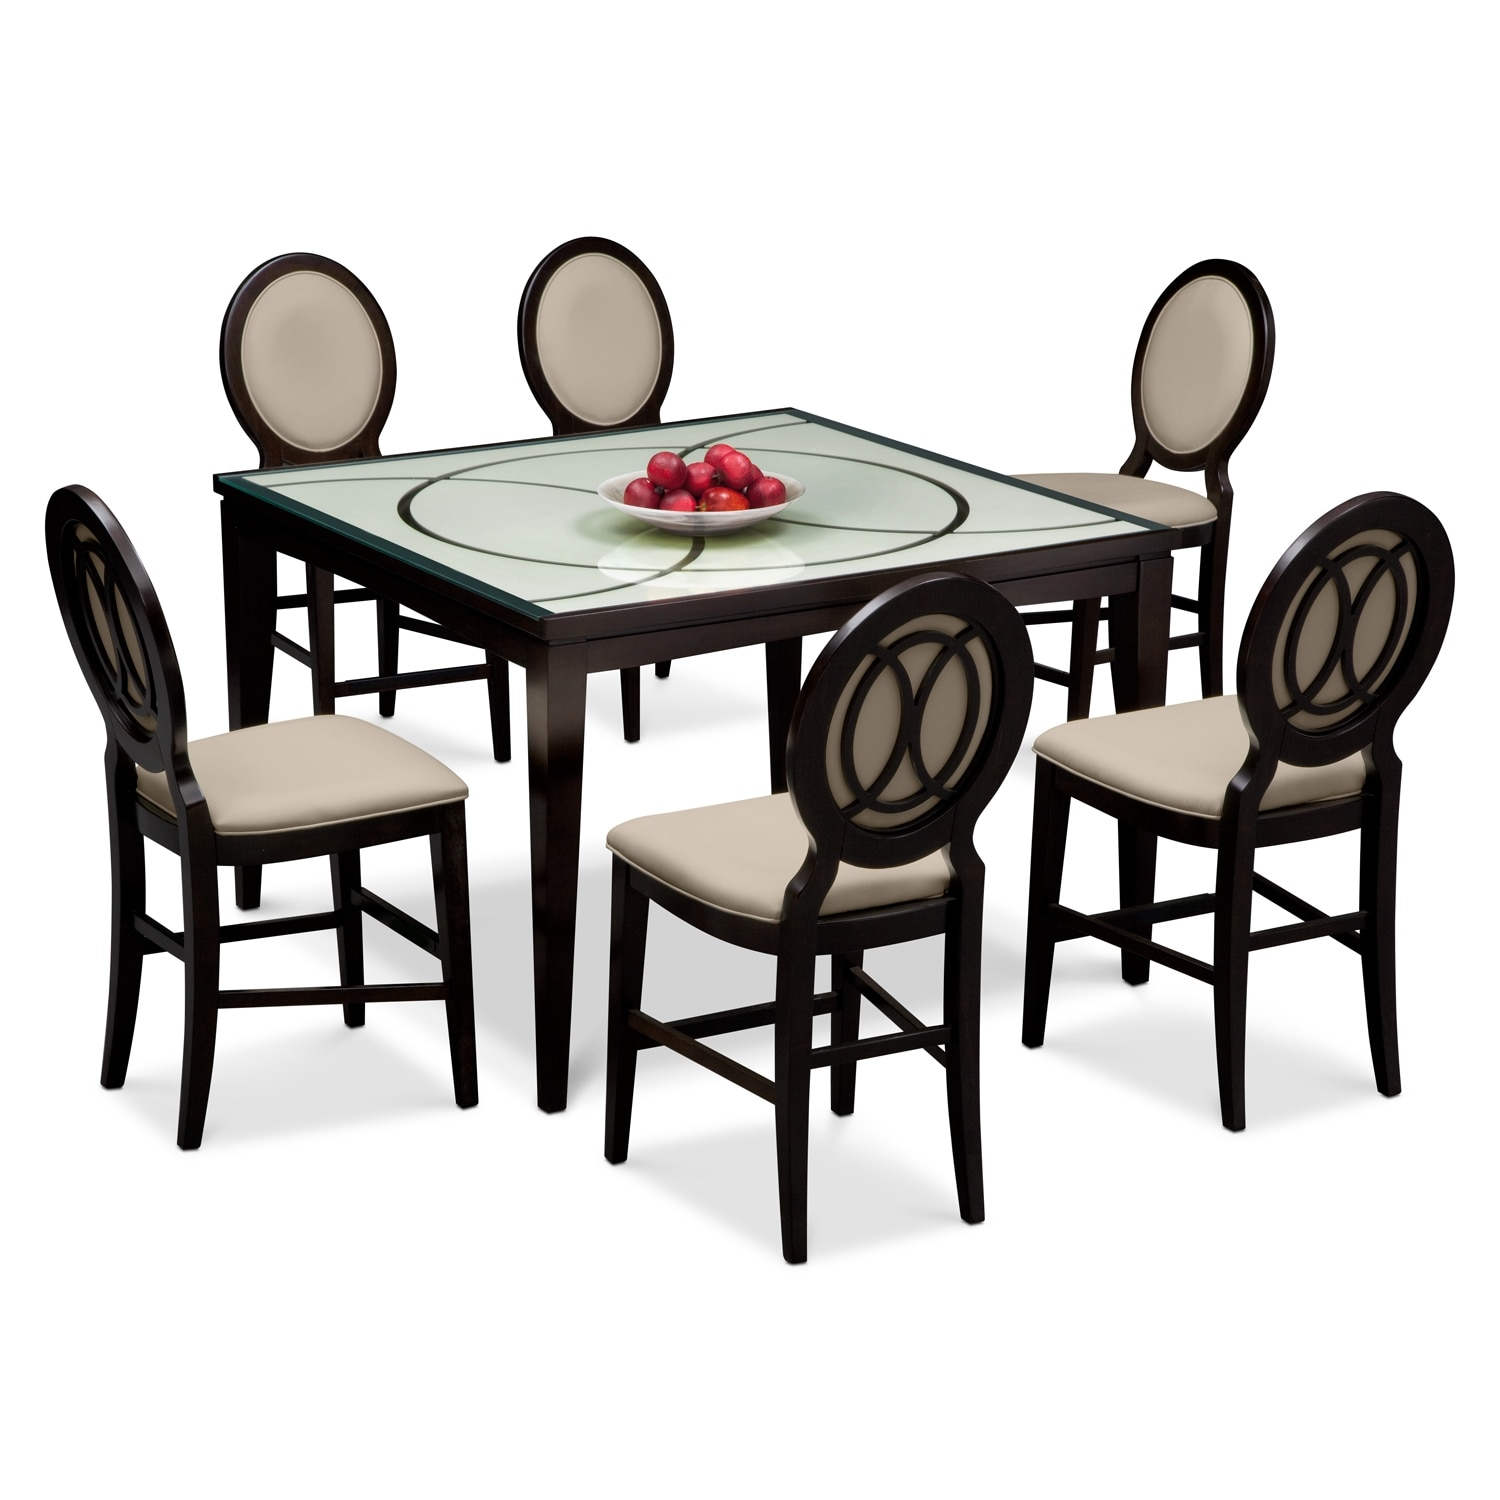 Cosmo Counter-Height Table and 6 Chairs - Merlot